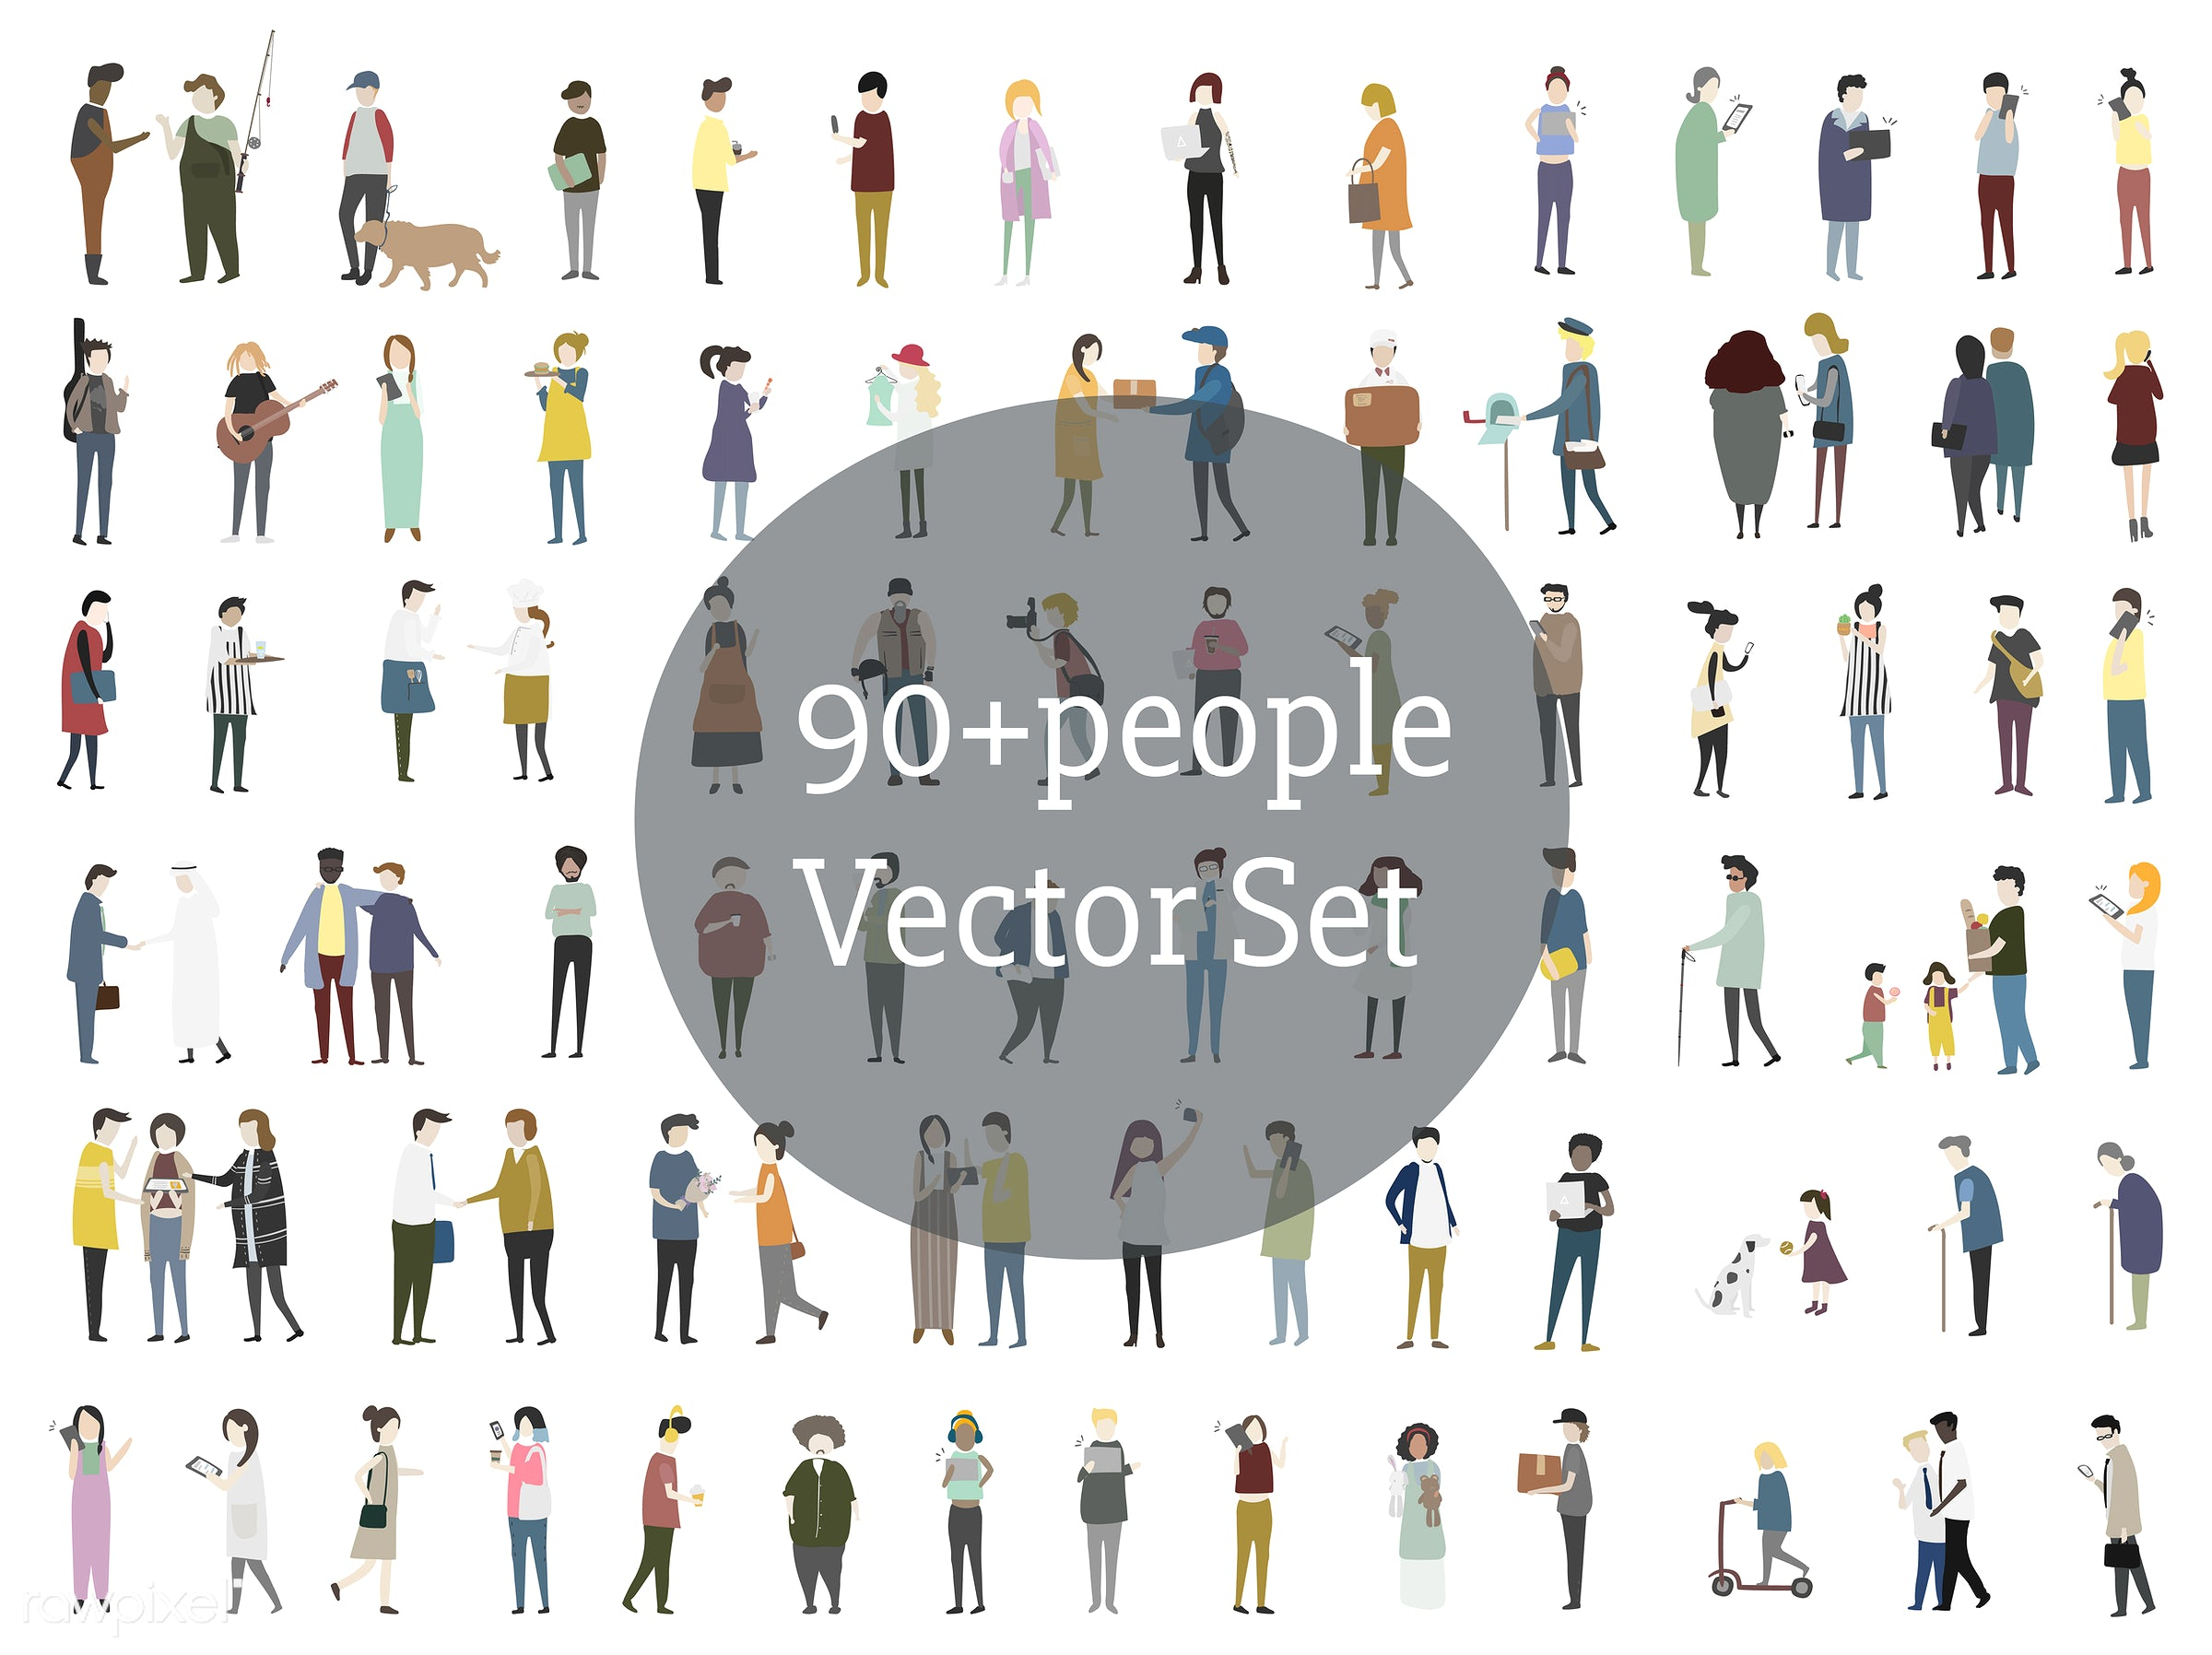 Vector set of illustrated people - character, occupation, career, cartoon, collection, community, diversity, graphic,...